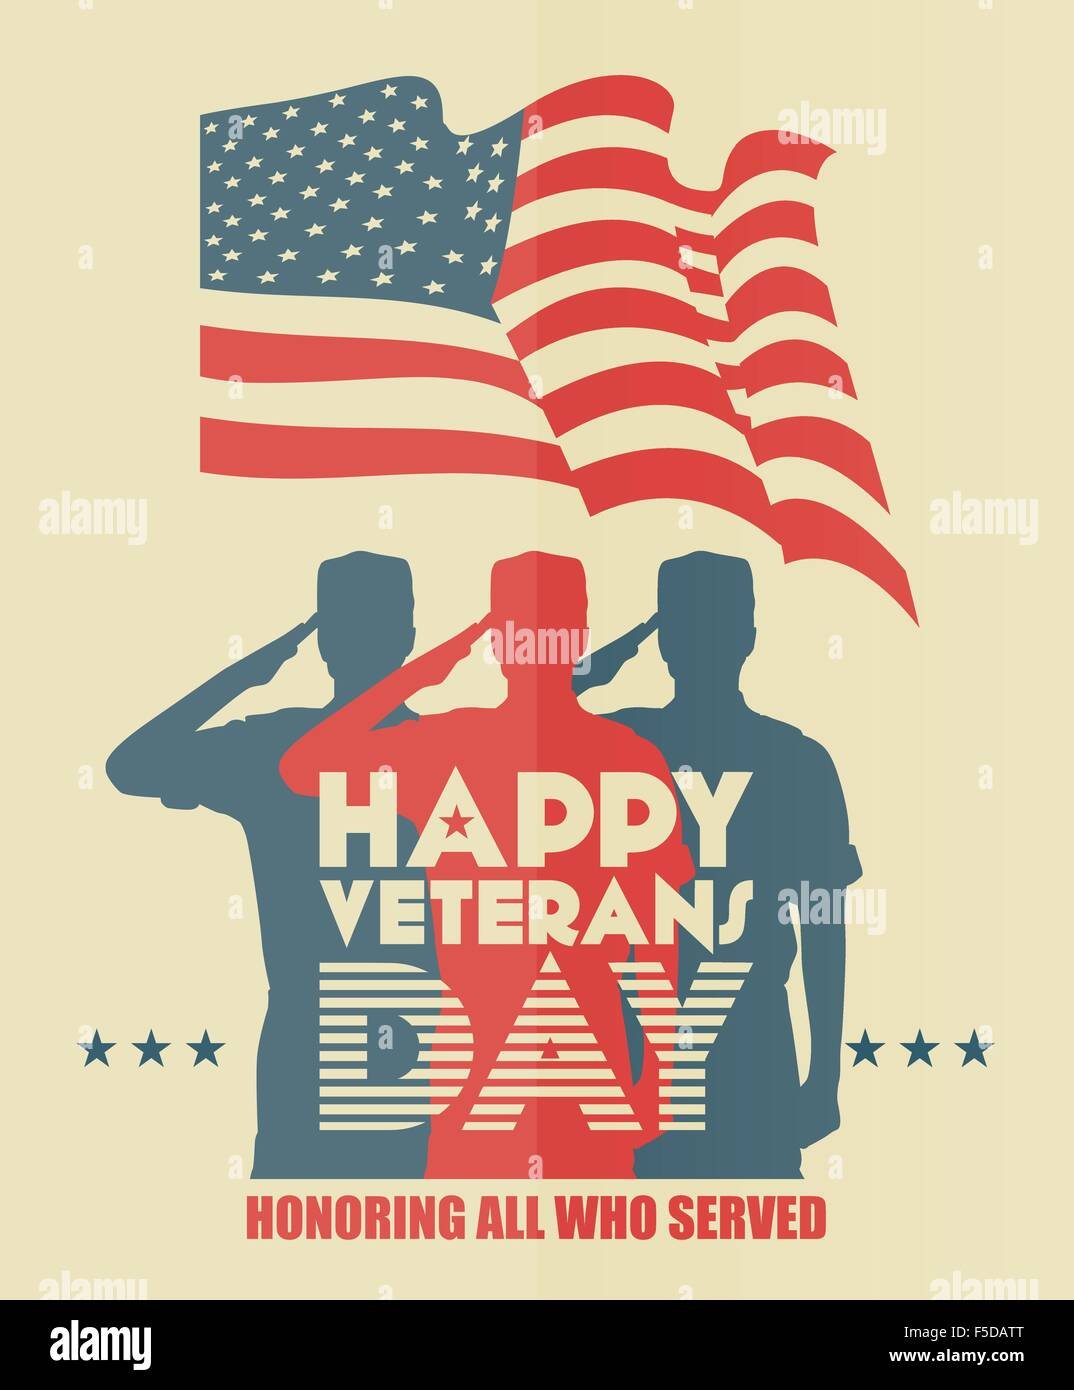 Veterans day greeting vector card stock vector art illustration veterans day greeting vector card m4hsunfo